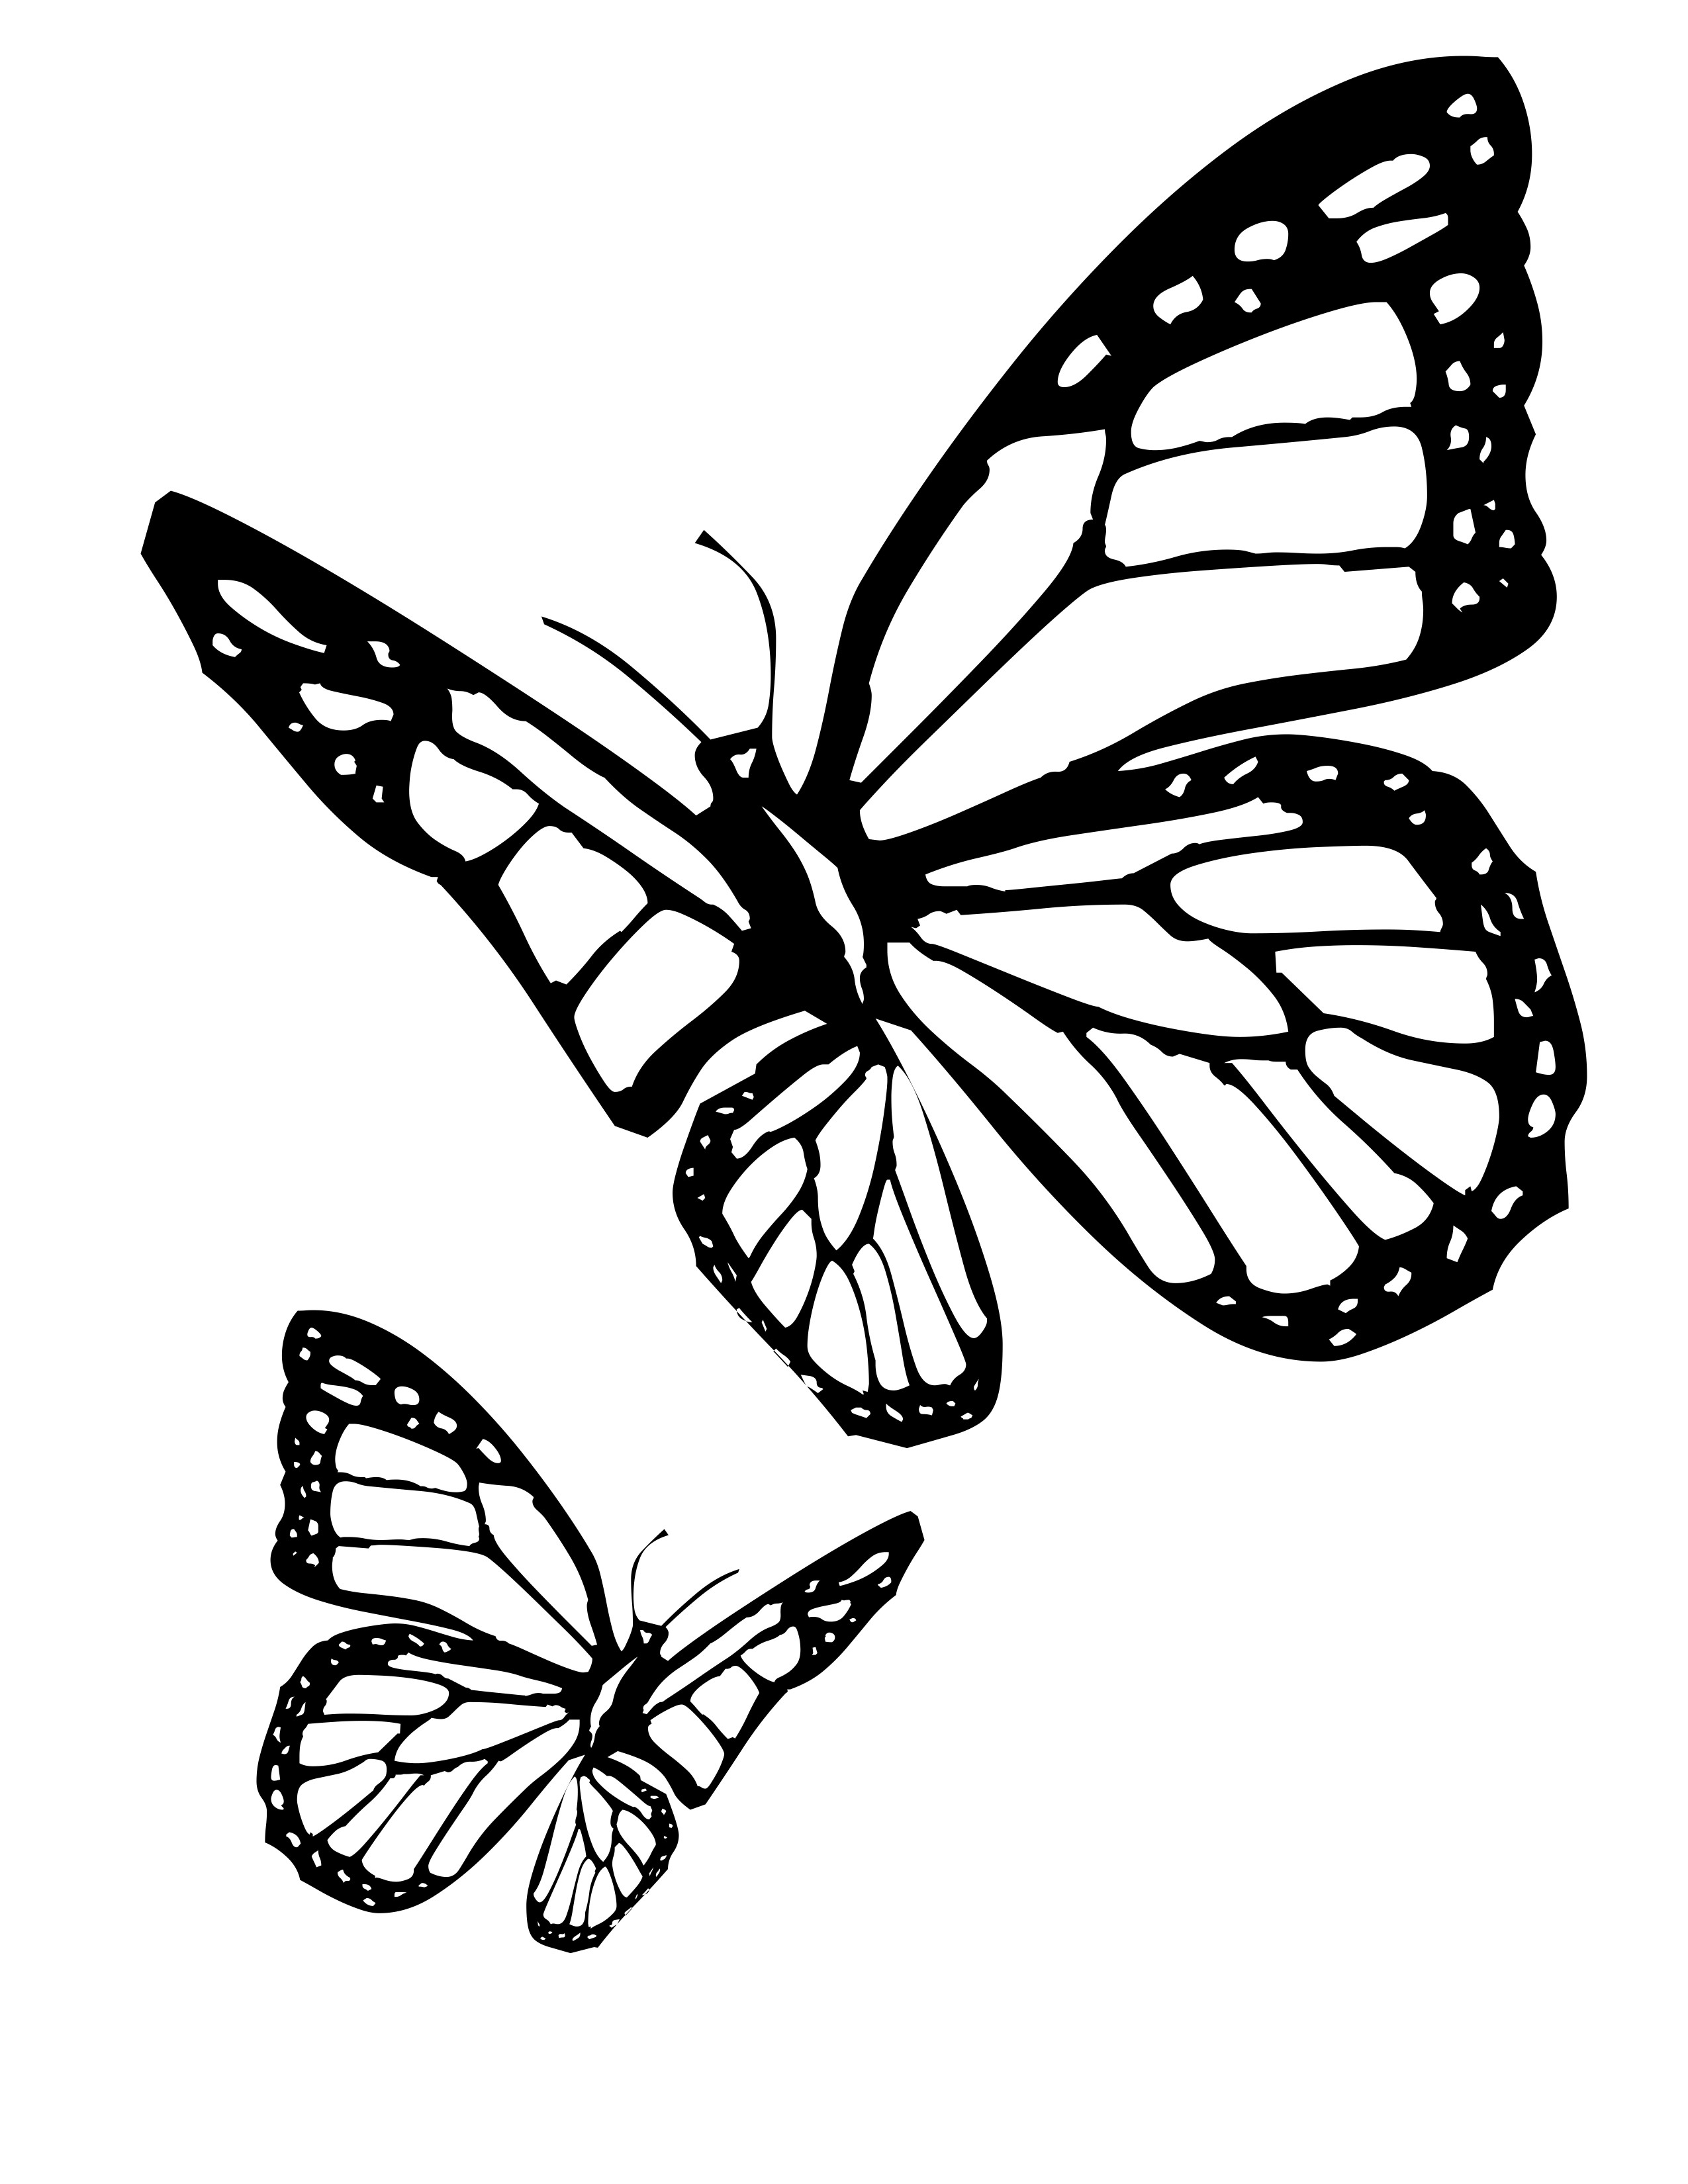 Butterfly clip art realistic. Butterflies flying drawing at